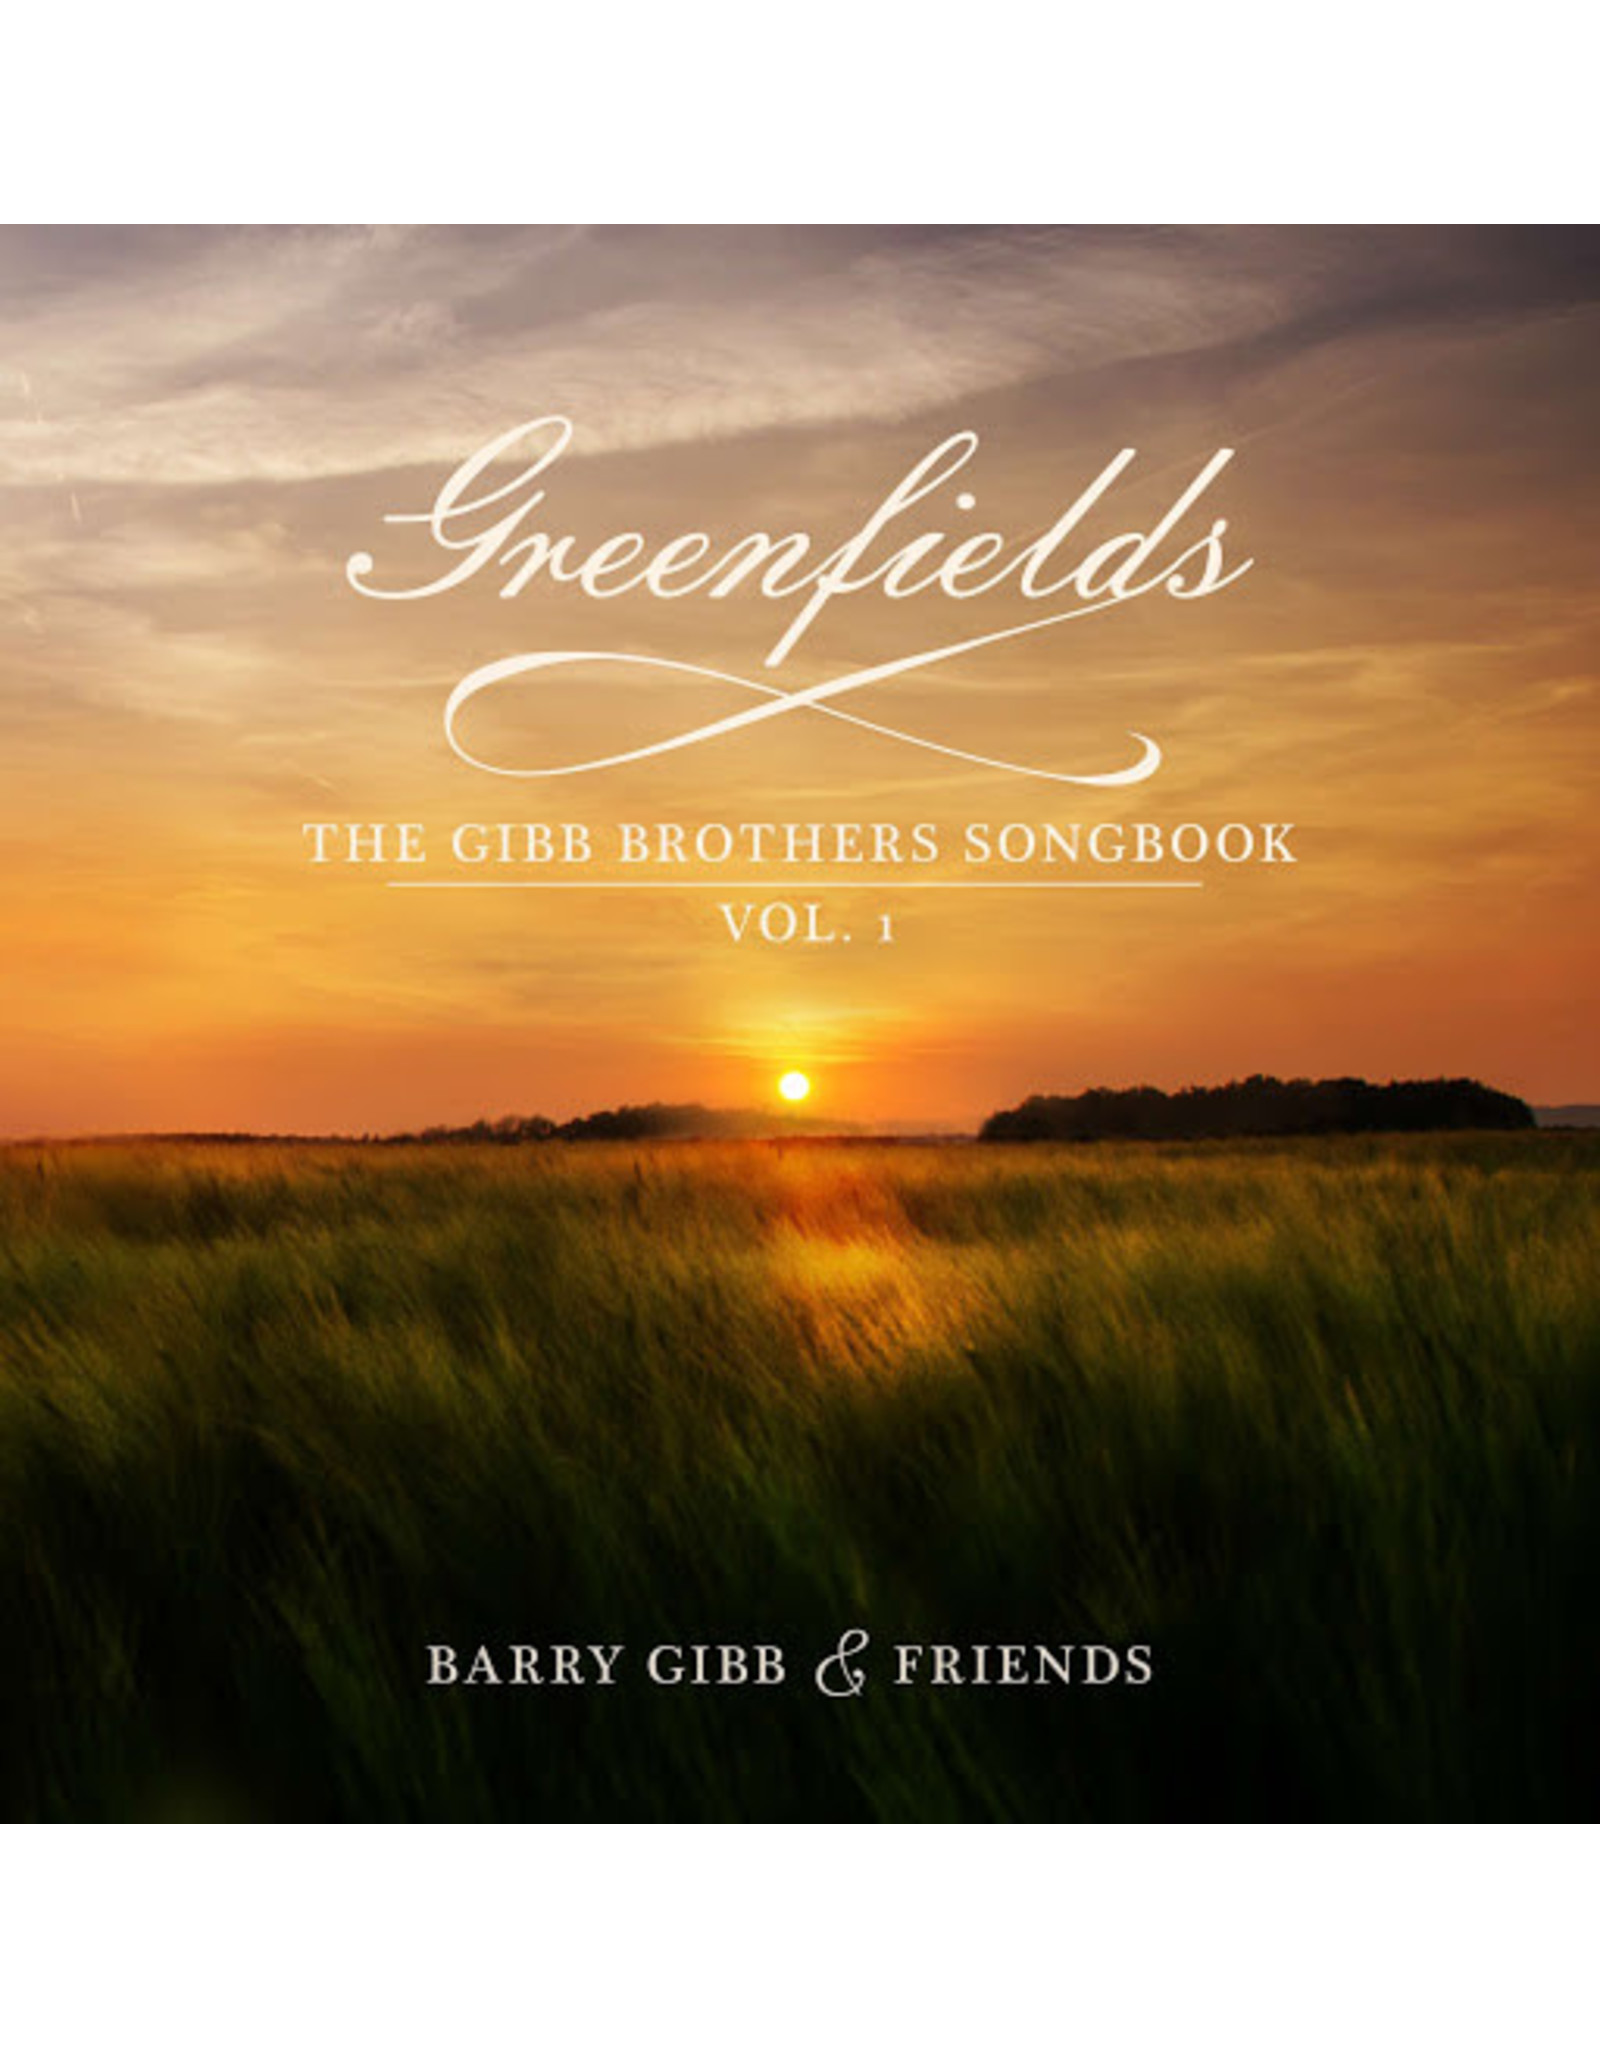 Gibb, Barry & Friends - Greenfields: The Gibb Brothers' Songbook Vol. 1 LP